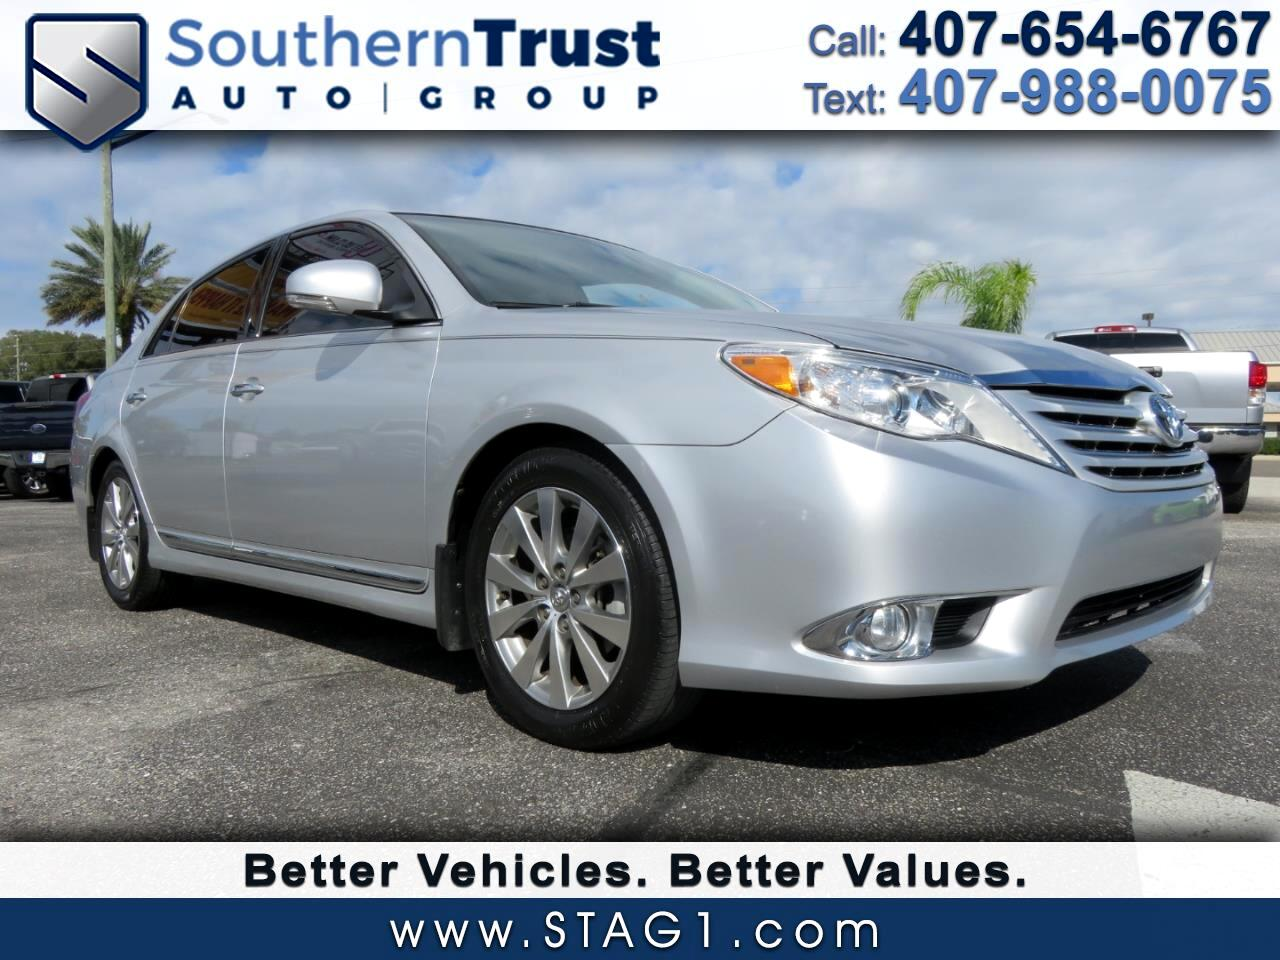 Toyota Avalon 4dr Sdn (Natl) 2011